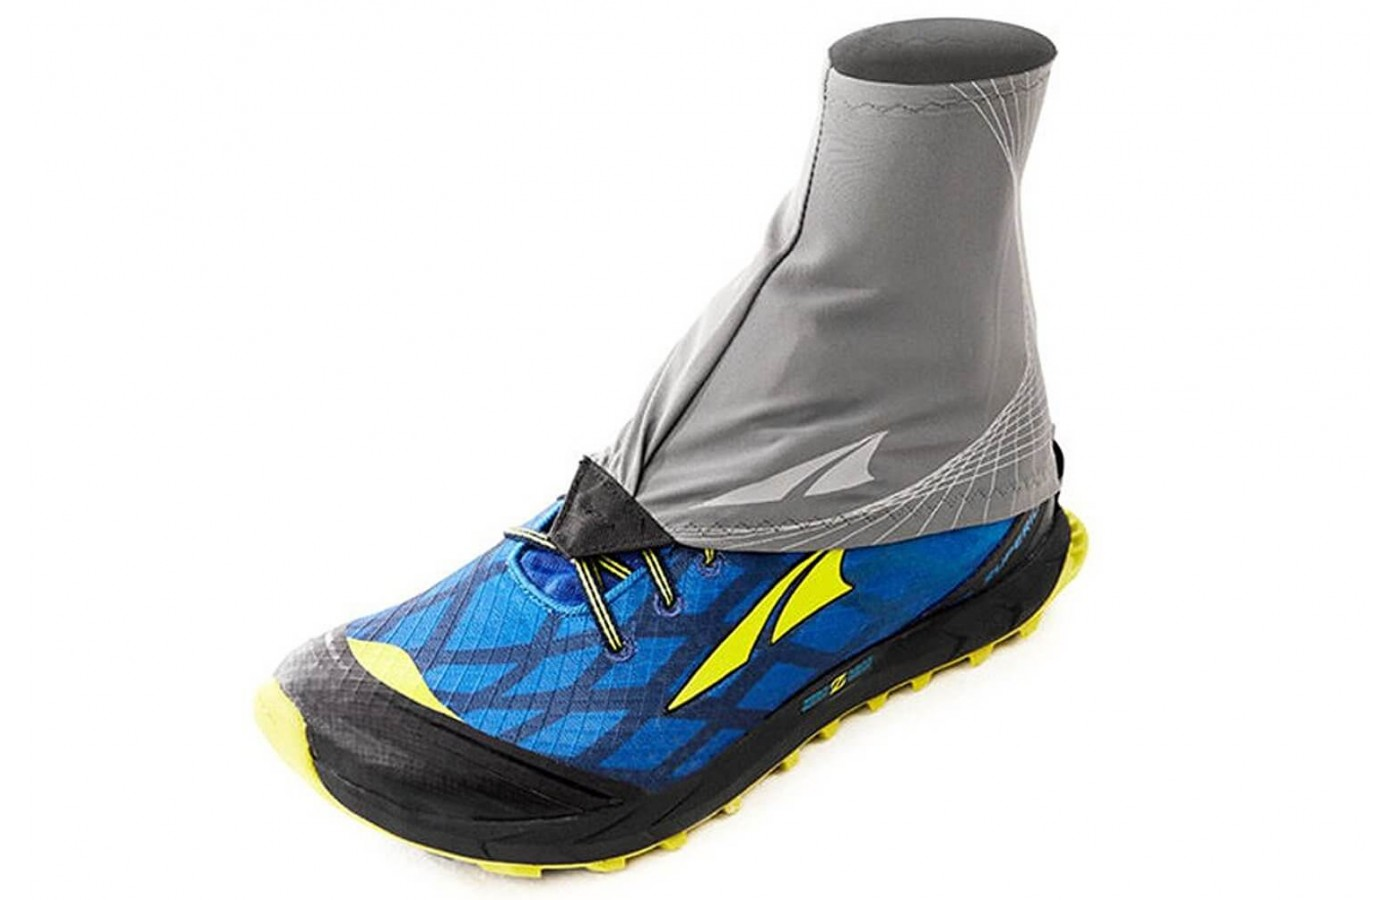 The Altra Trail Gaiters are designed to keep trail debris away from your foot during outdoor adventures.